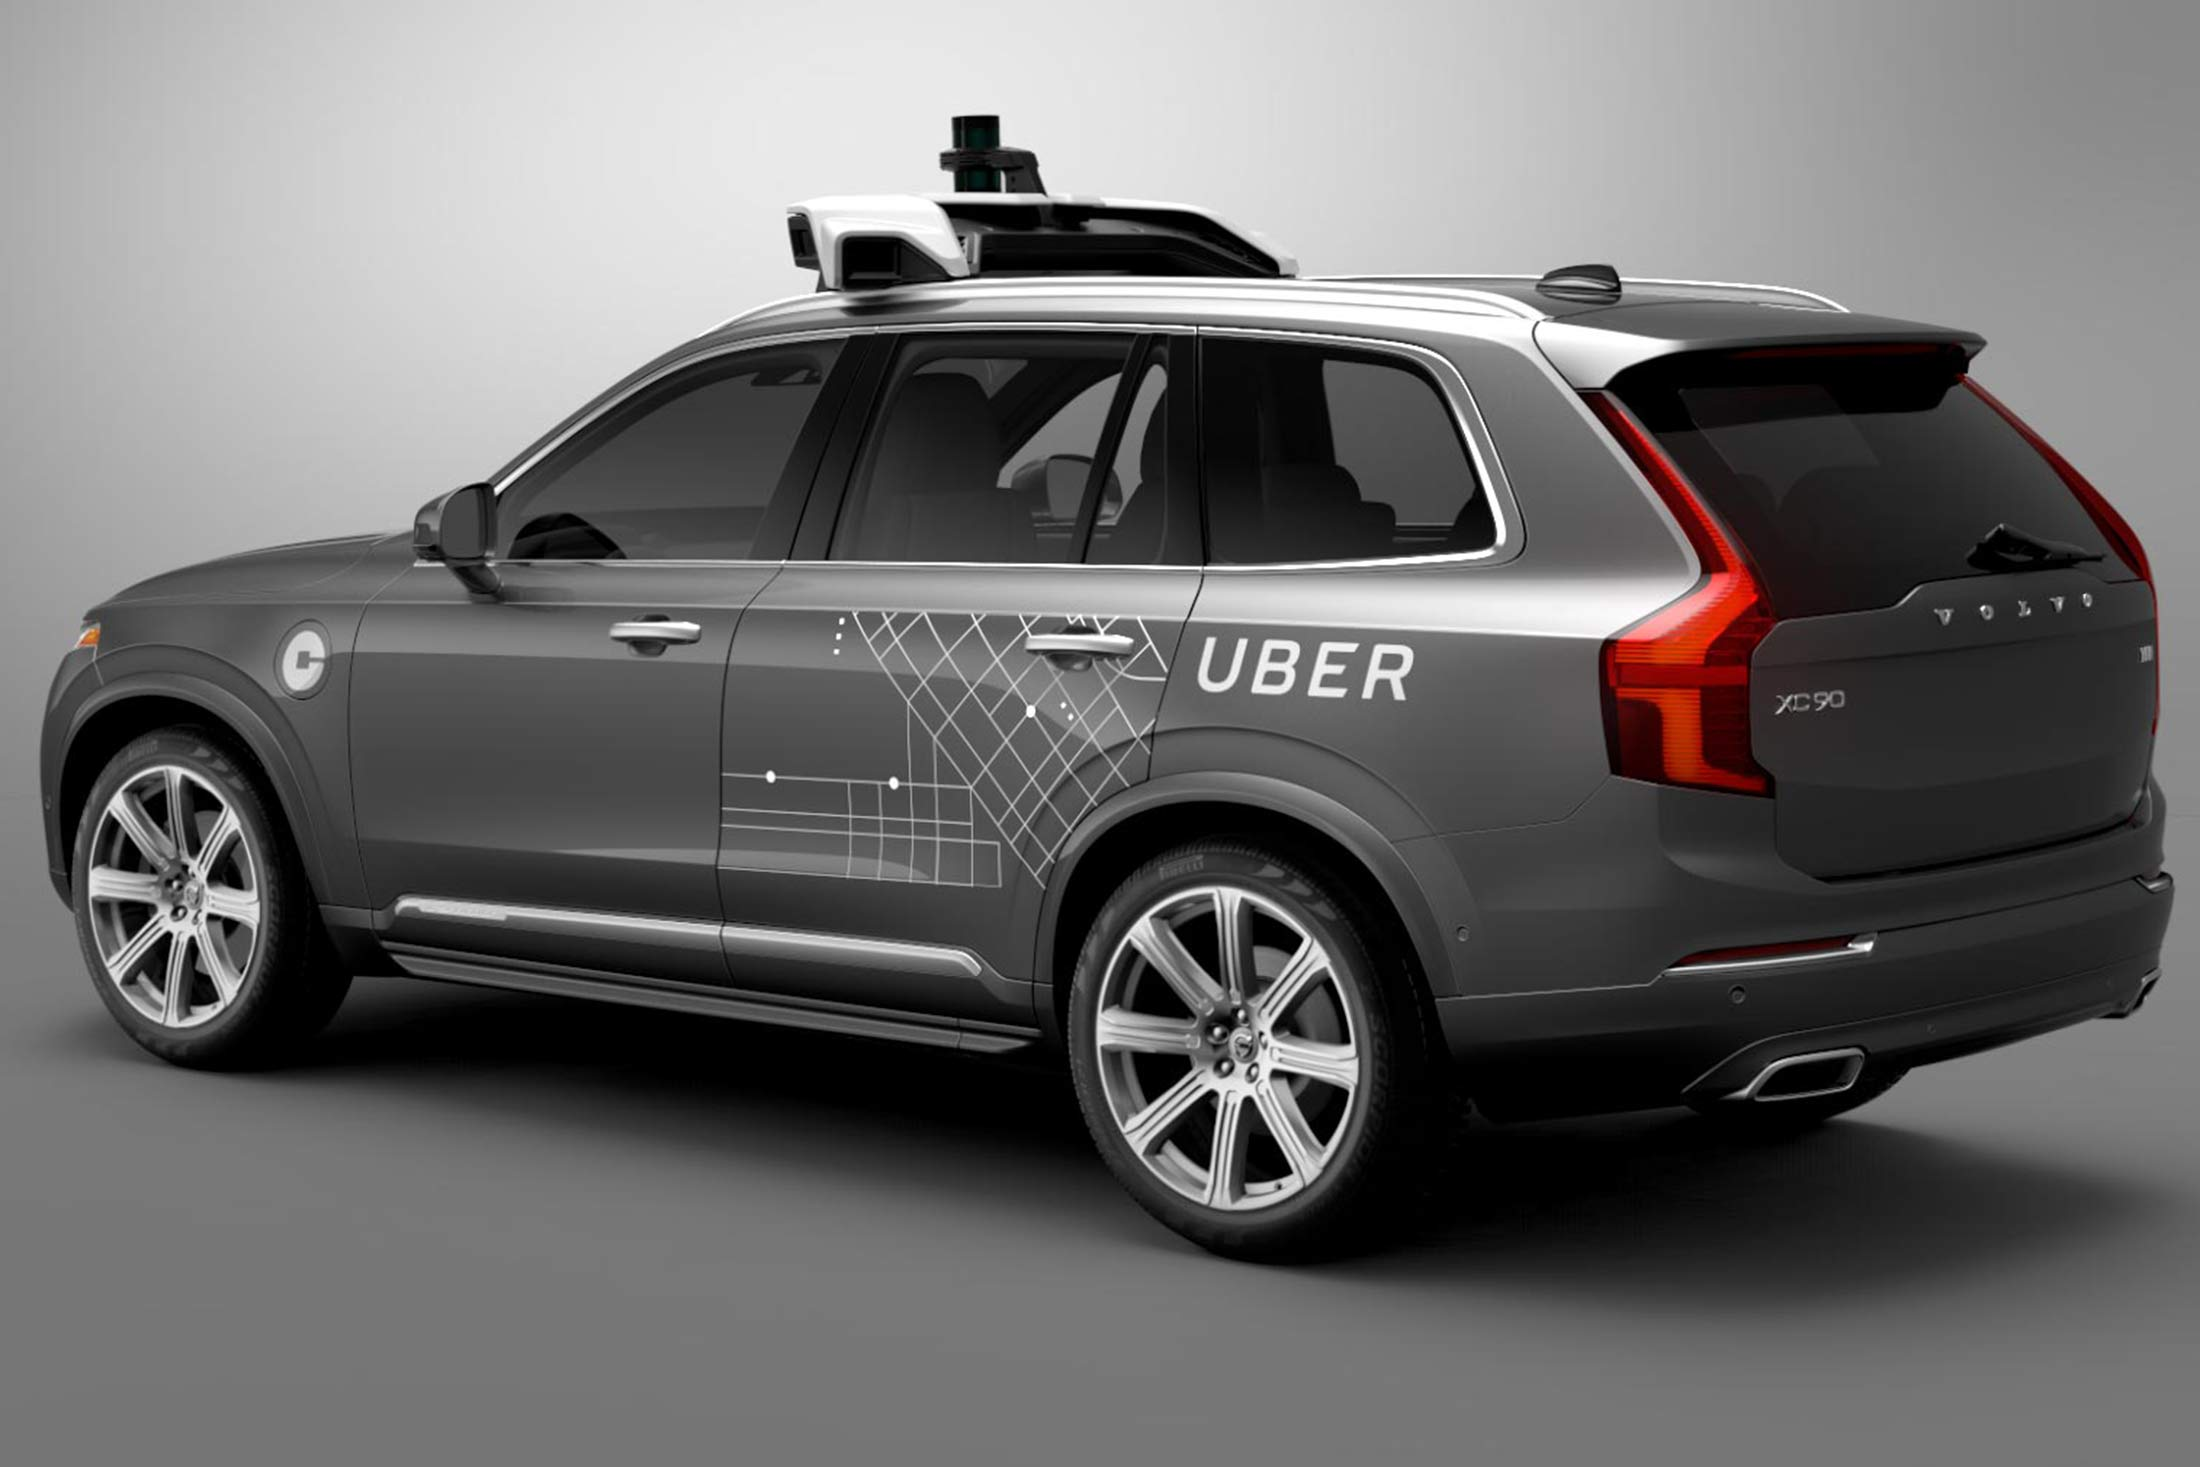 Uber Says 'FU' To DMV, Rolls Out Self-Driving Cars Without Approval